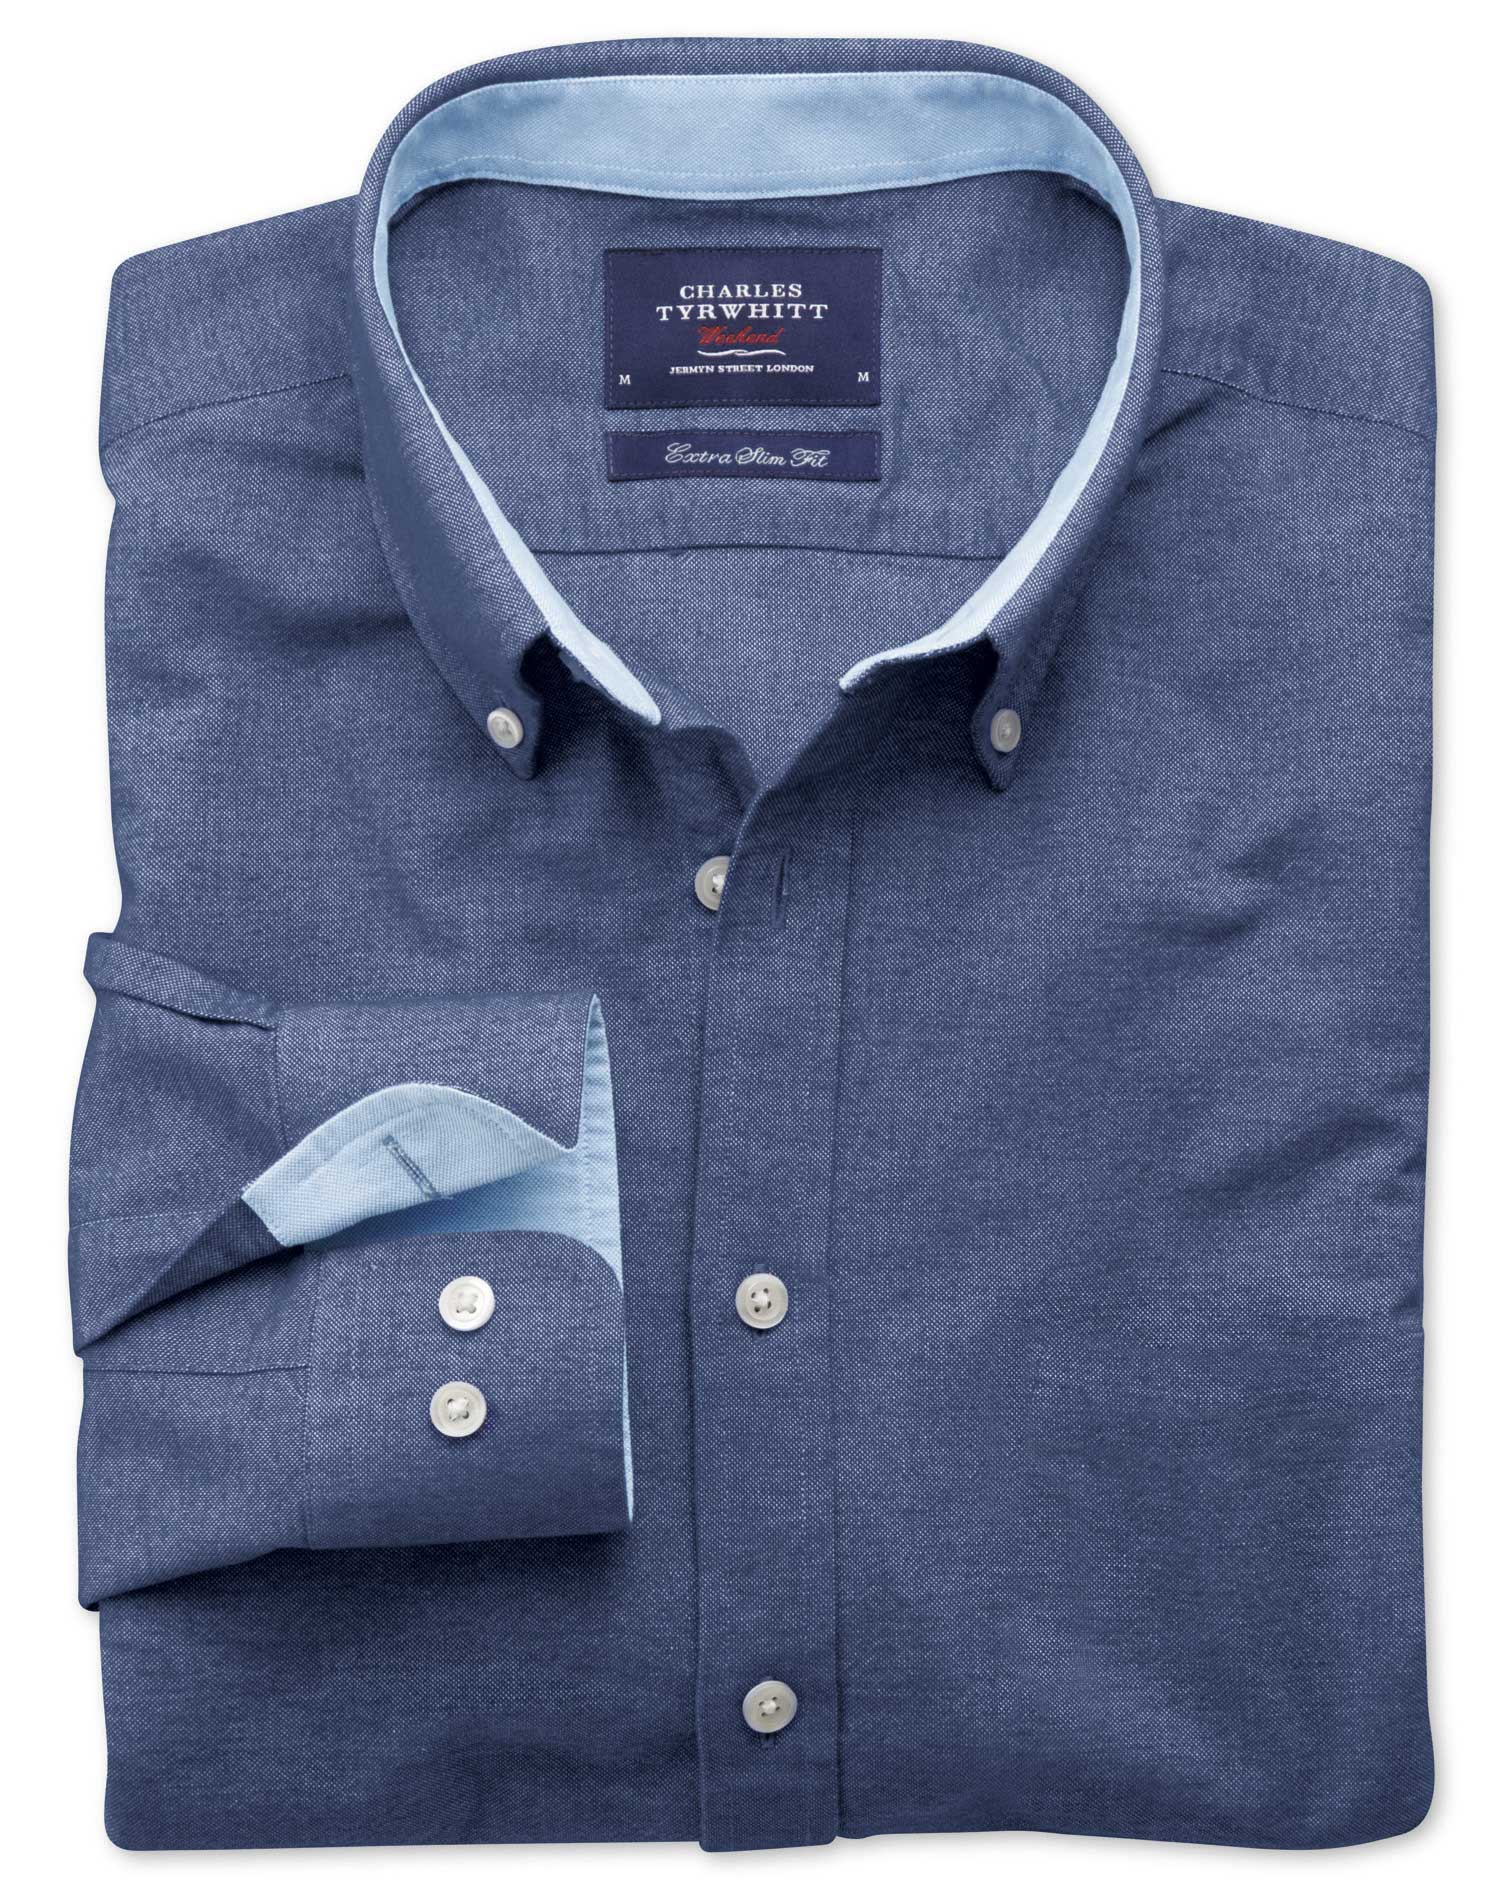 Extra Slim Fit Denim Blue Washed Oxford Cotton Shirt Single Cuff Size XS by Charles Tyrwhitt